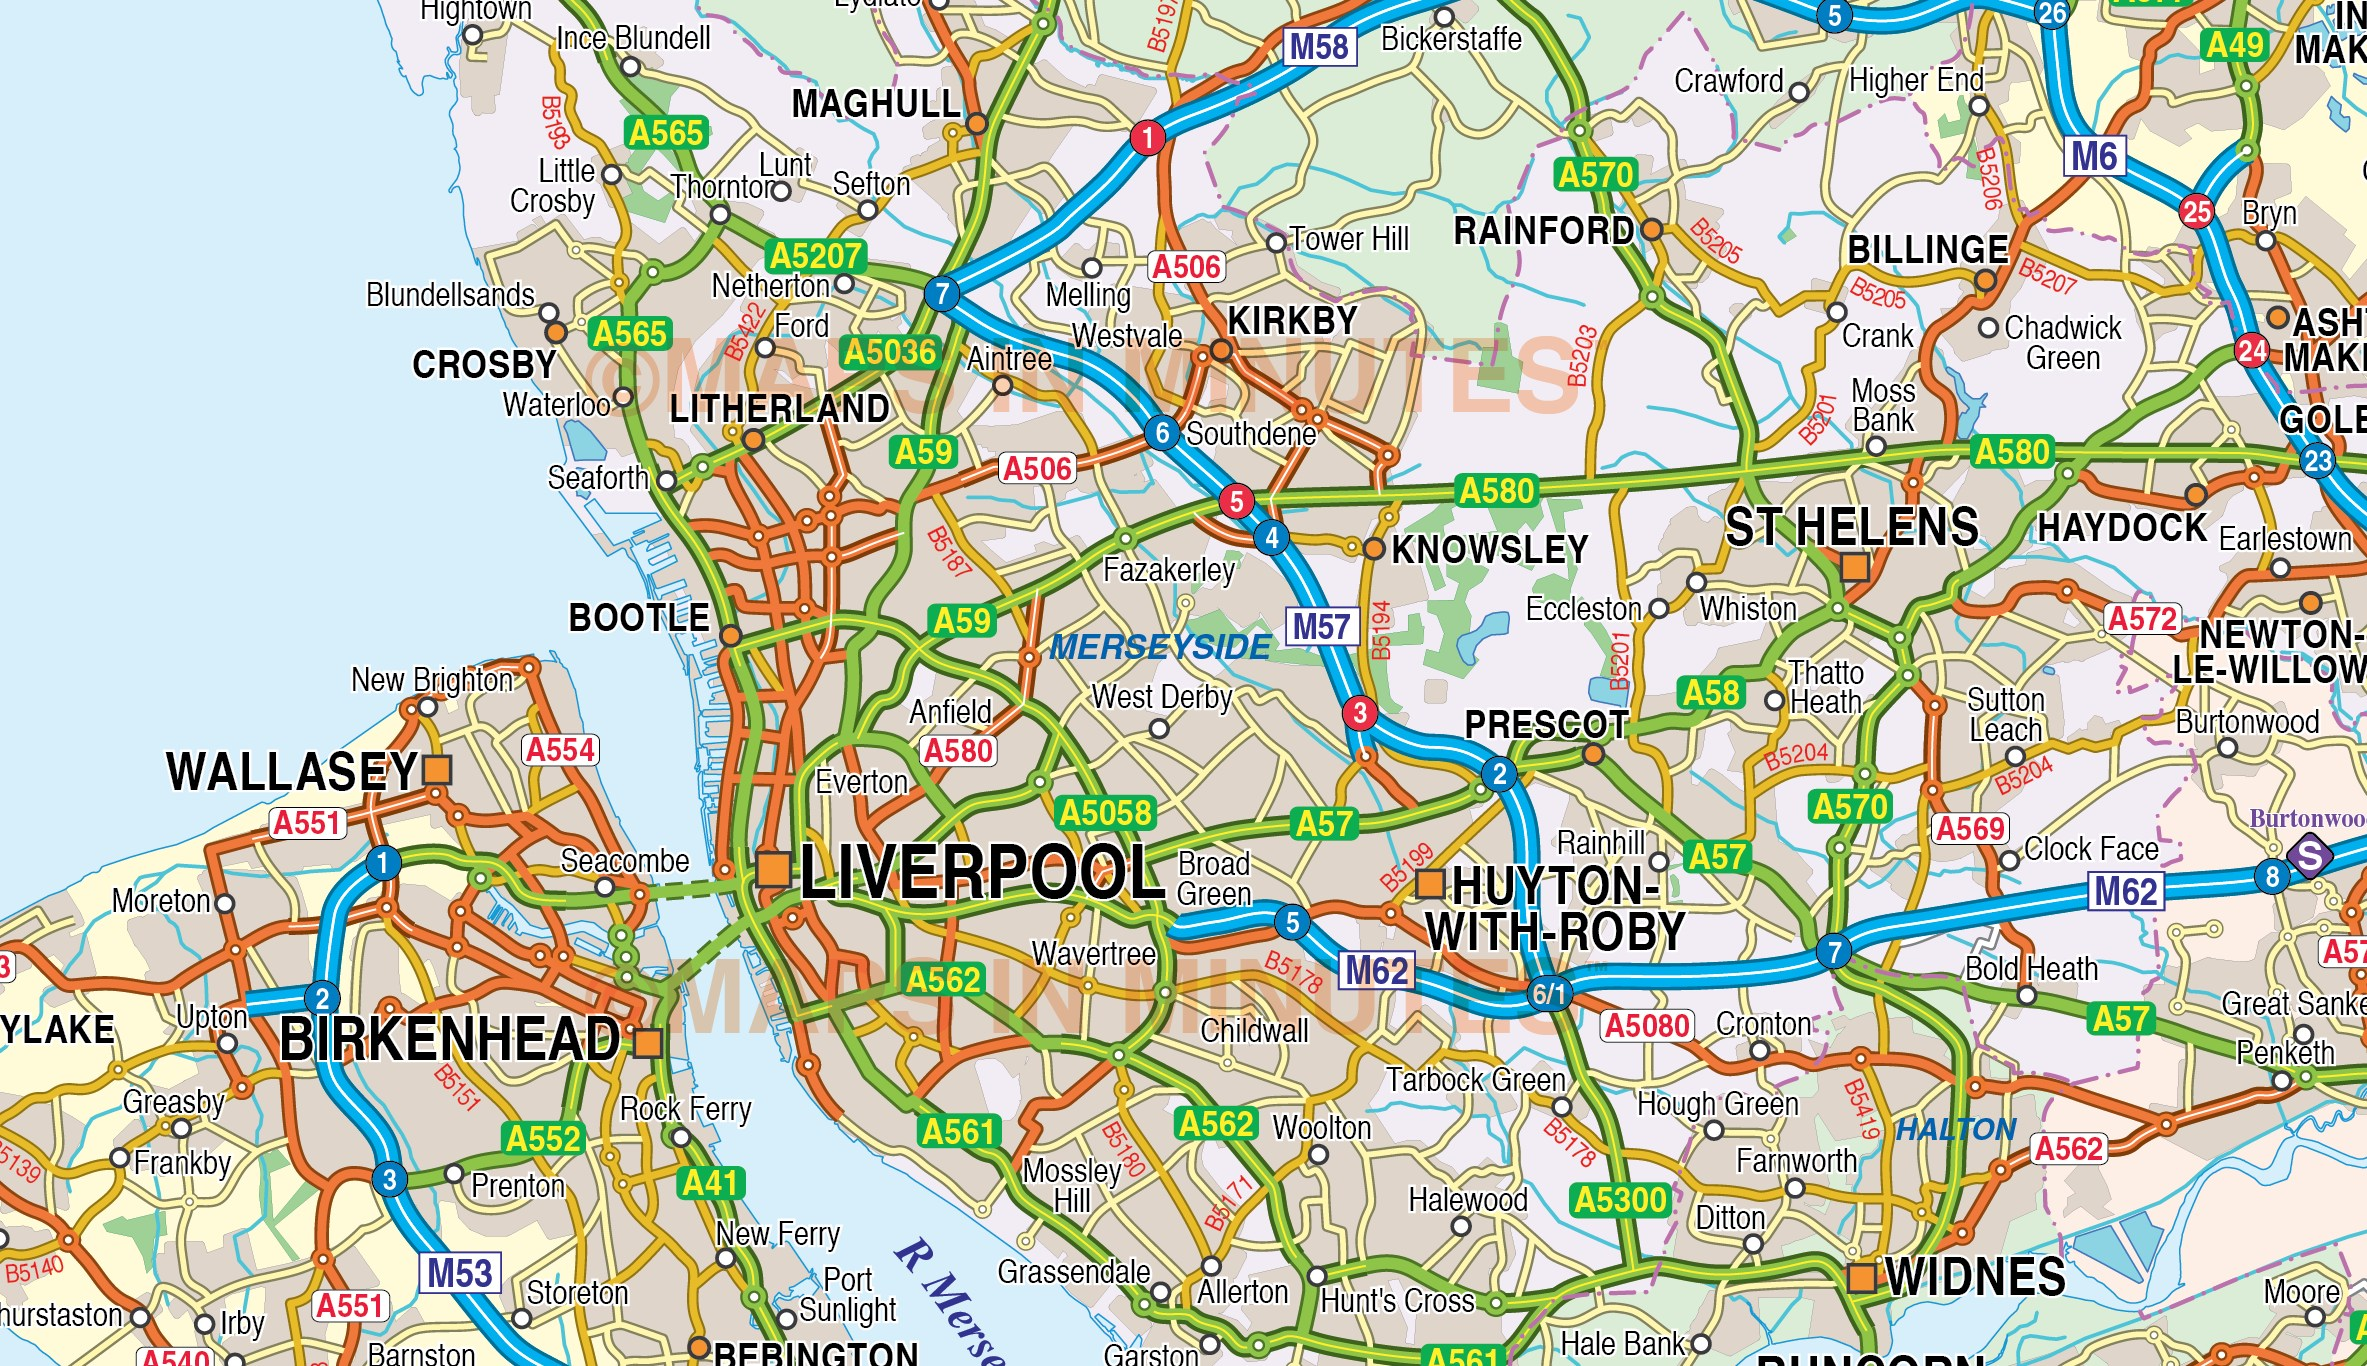 Digital vector map of Greater LiverpoolManchester 250k scale in